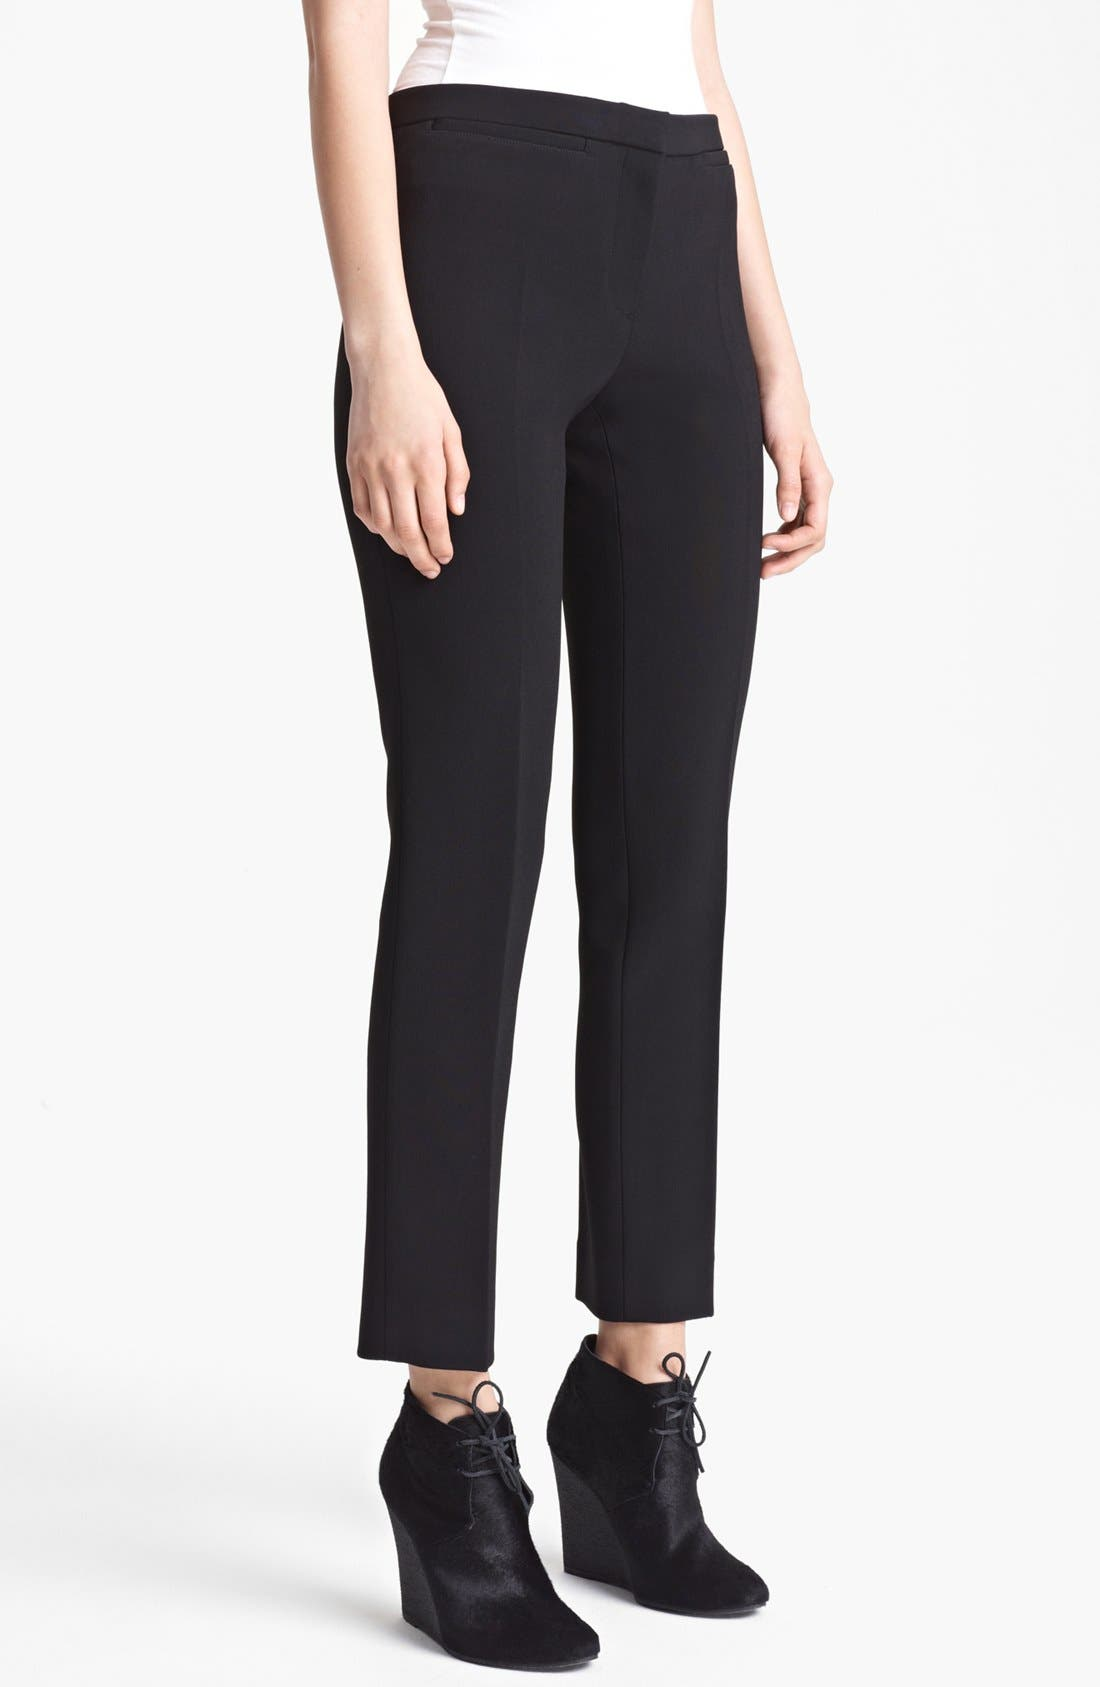 Alternate Image 1 Selected - Burberry Prorsum Narrow Leg Stretch Crepe Pants